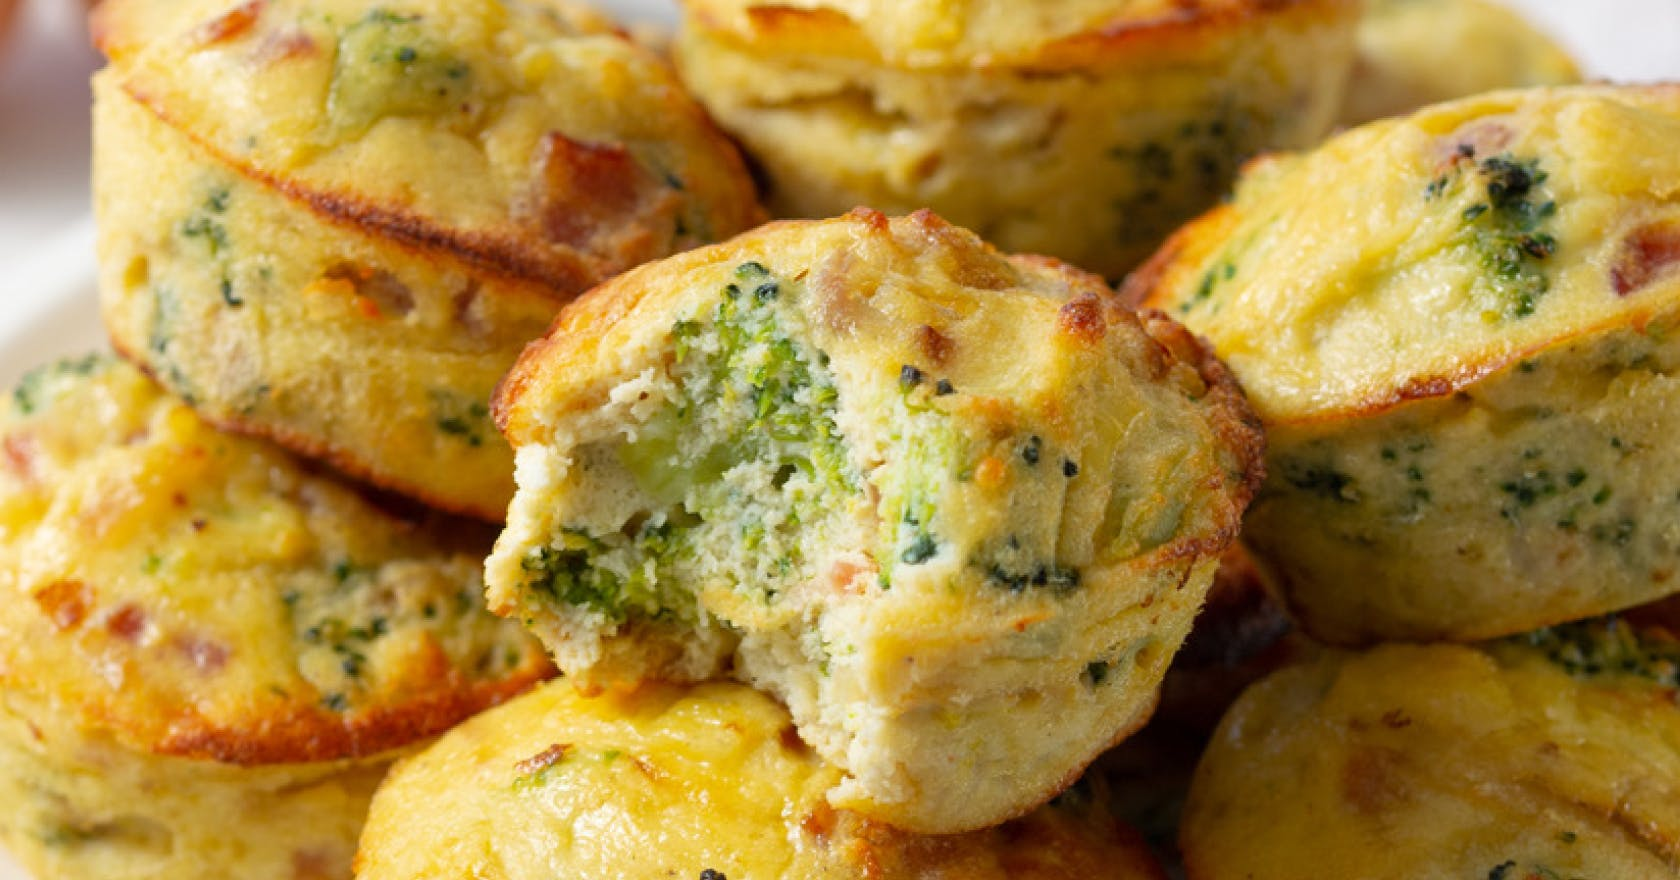 Egg muffin recipe: start the day right with this winning breakfast combo